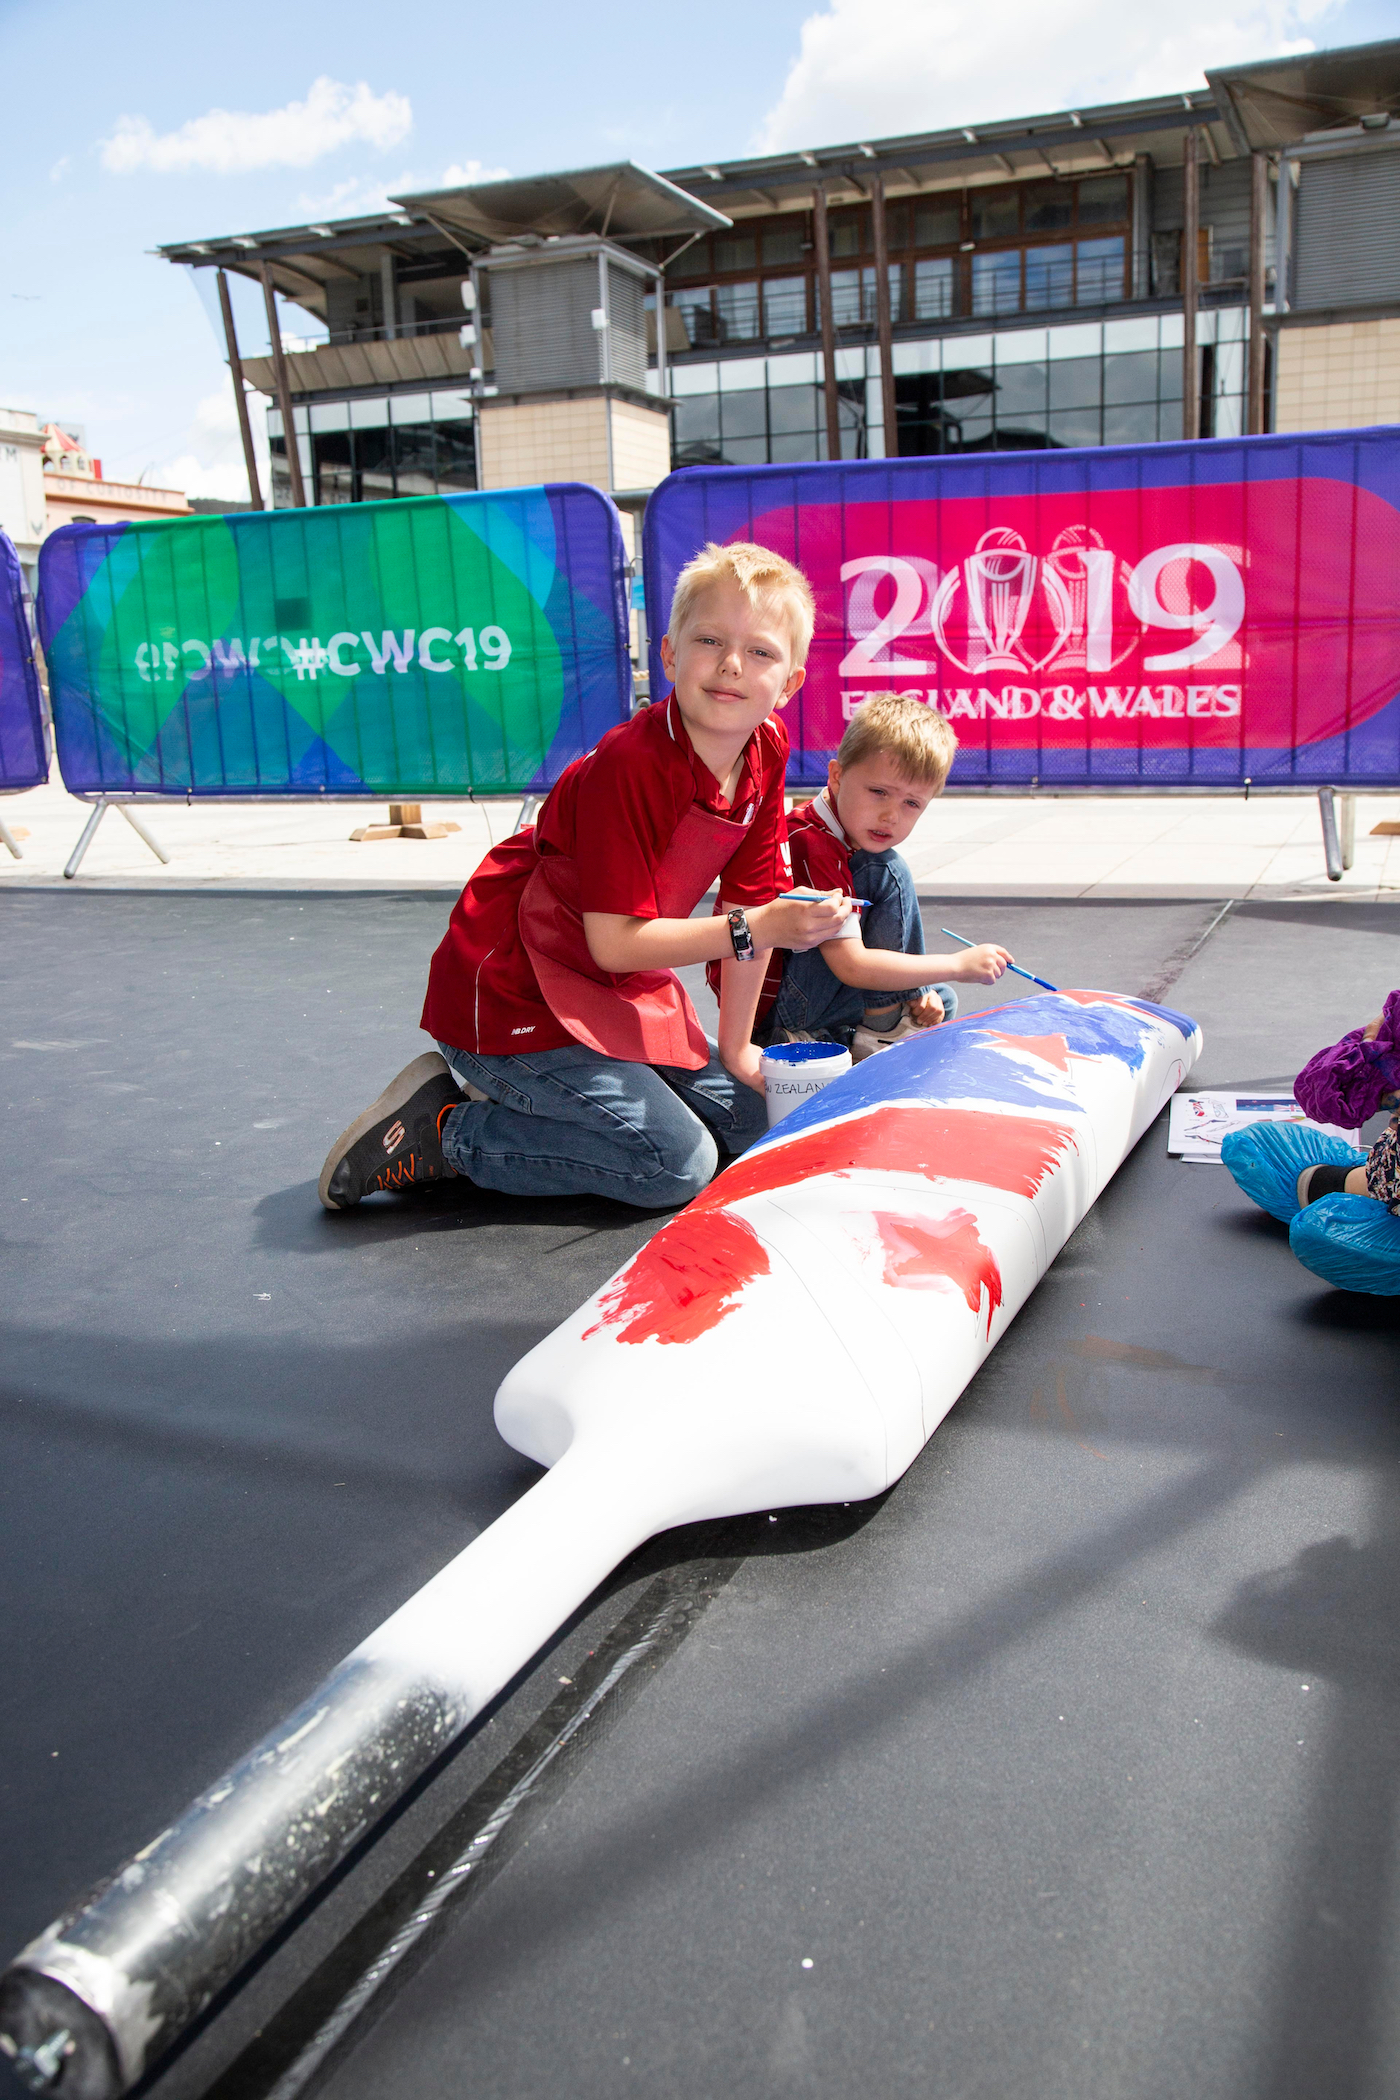 The primary focus of the World Cup experience is kids between the ages of five and 12, fans of tomorrow, who will shape the future of the game in the UK